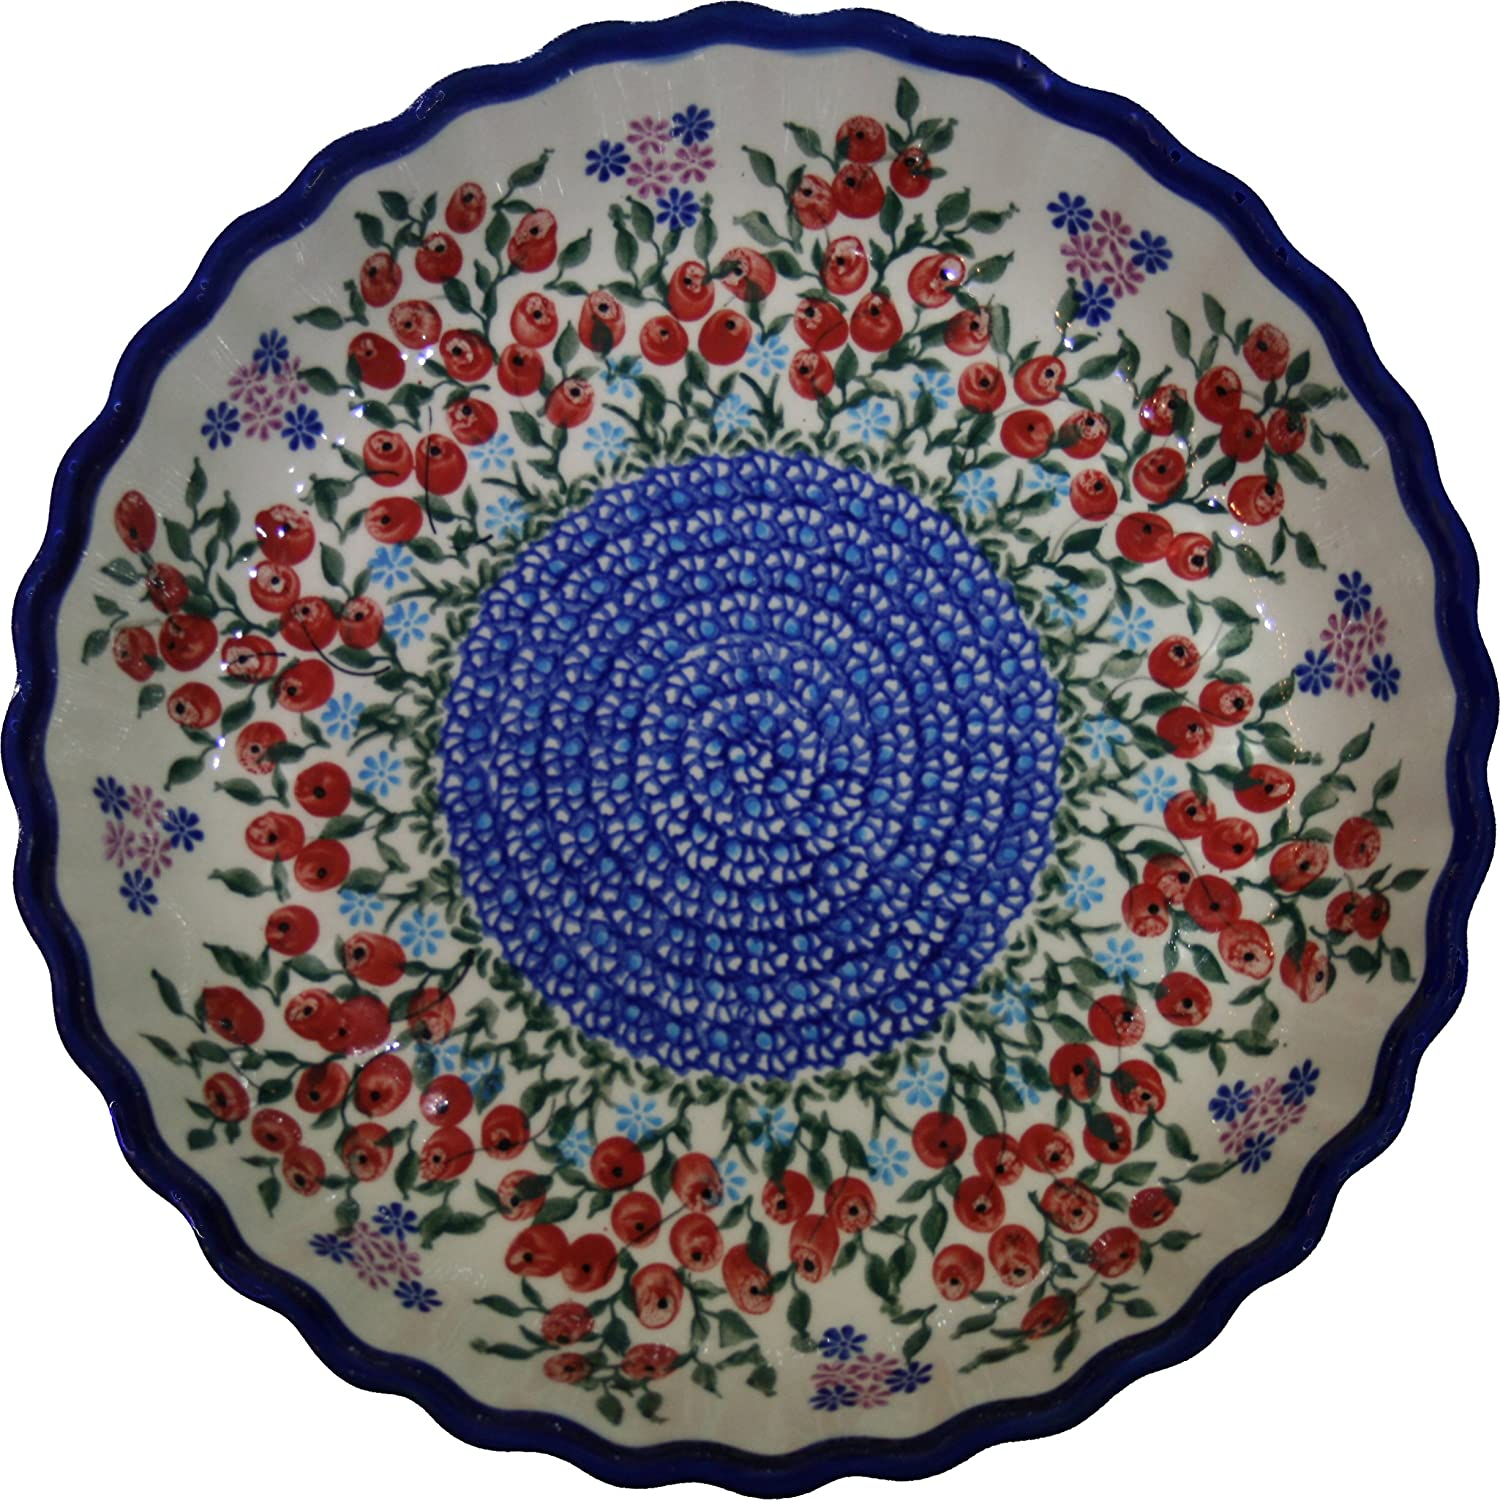 Polish Pottery Ceramika Boleslawiec 1212/282 Royal Blue Patterns 4-Cup 9-7/8-Inch Diameter Pie Baker, Small, Red Berries and Daisies